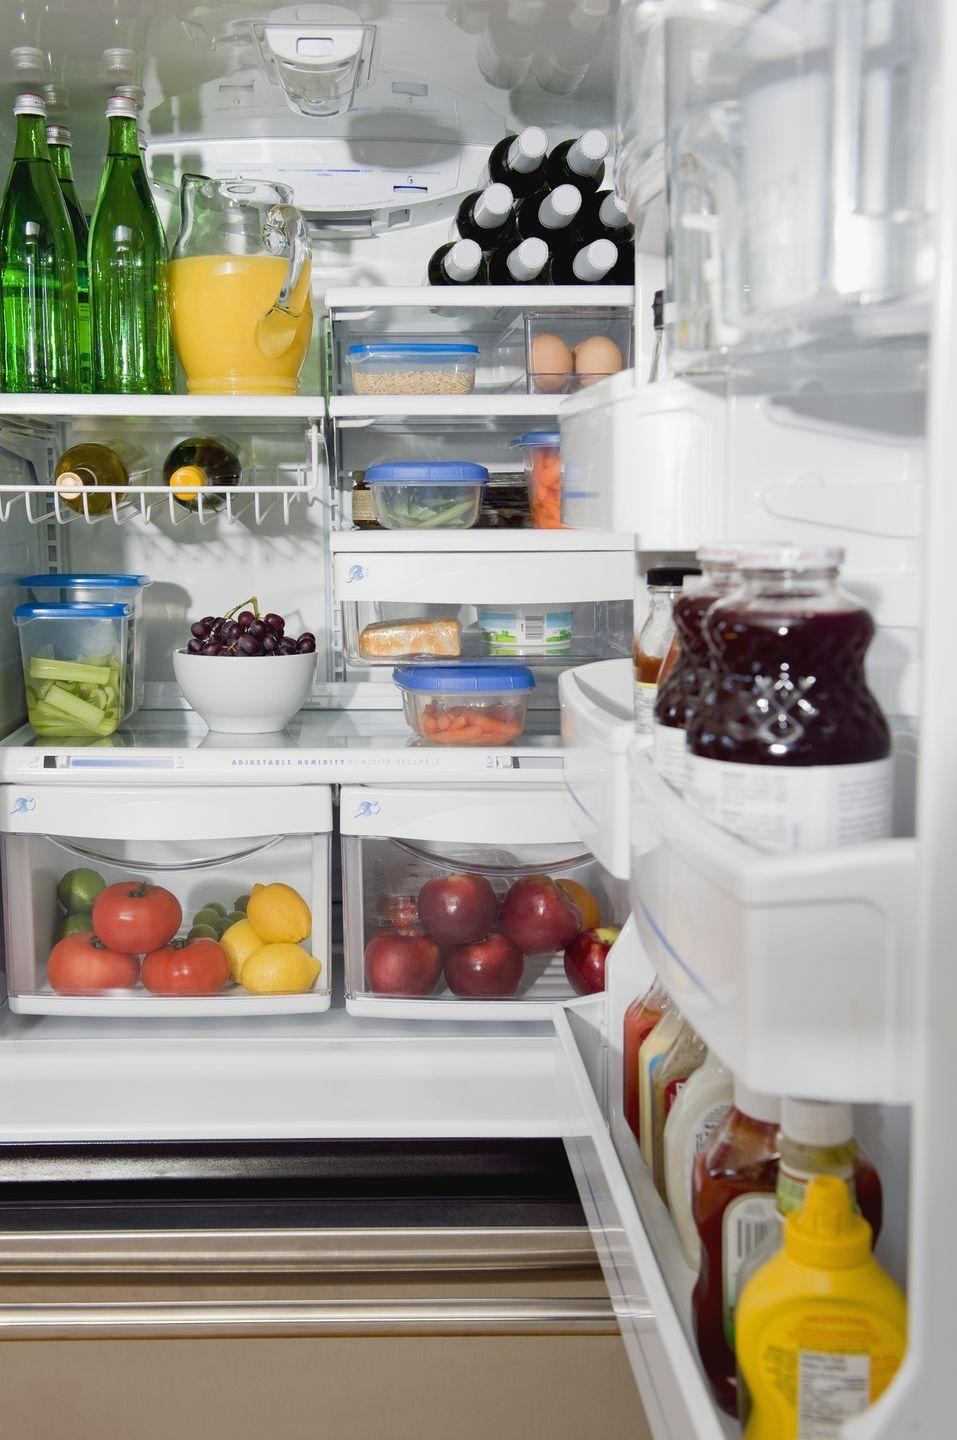 <p>Just as grocery stores have a designated place for different types of items — meats, dairy, snacks, etc. — so too should your fridge. Silberstein advises using clear bins in your fridge to keep everything in its designated place, and stacking the bins to take advantage of the height available on most refrigerator shelves. </p>